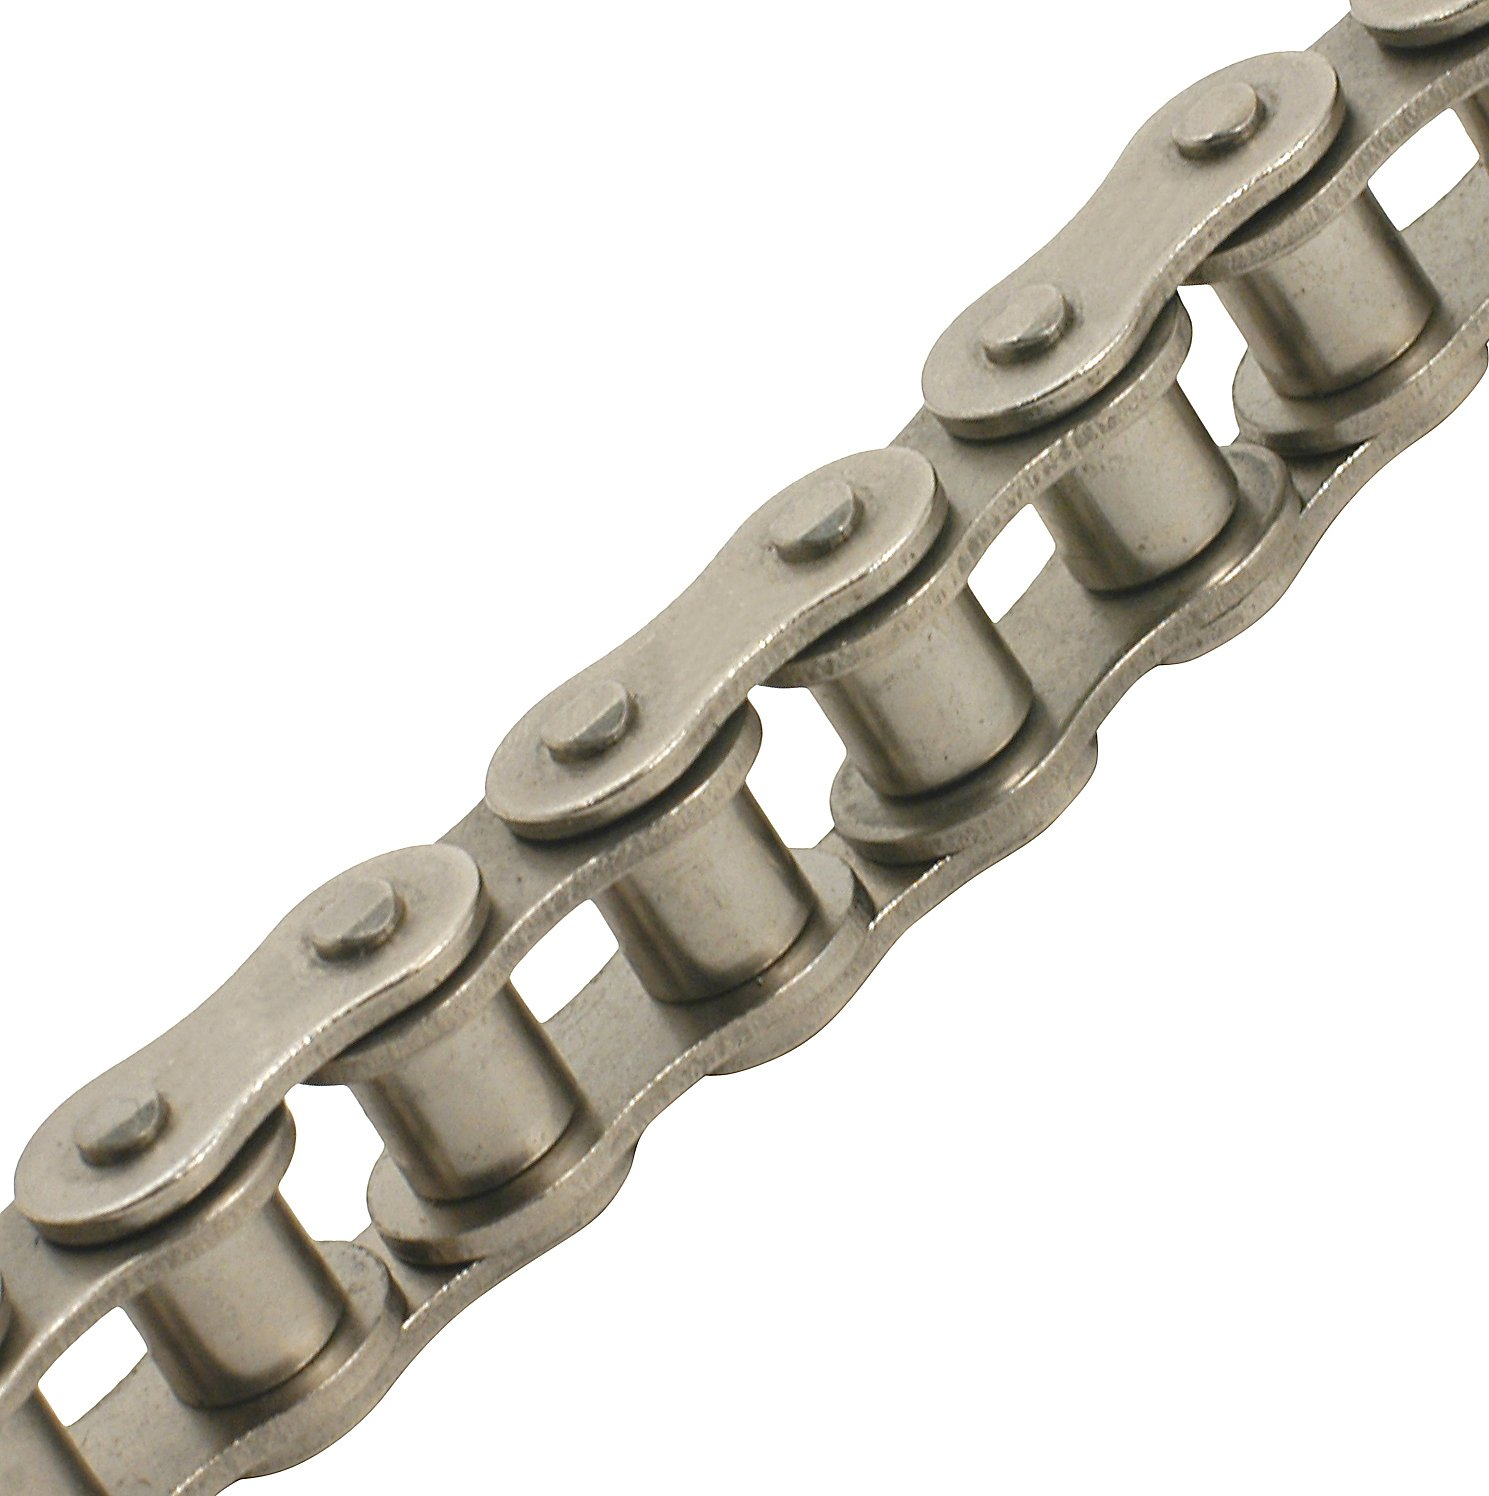 TRITAN 35-1NP 100FT Precision ANSI Nickel Plated Roller Chain, 3/8